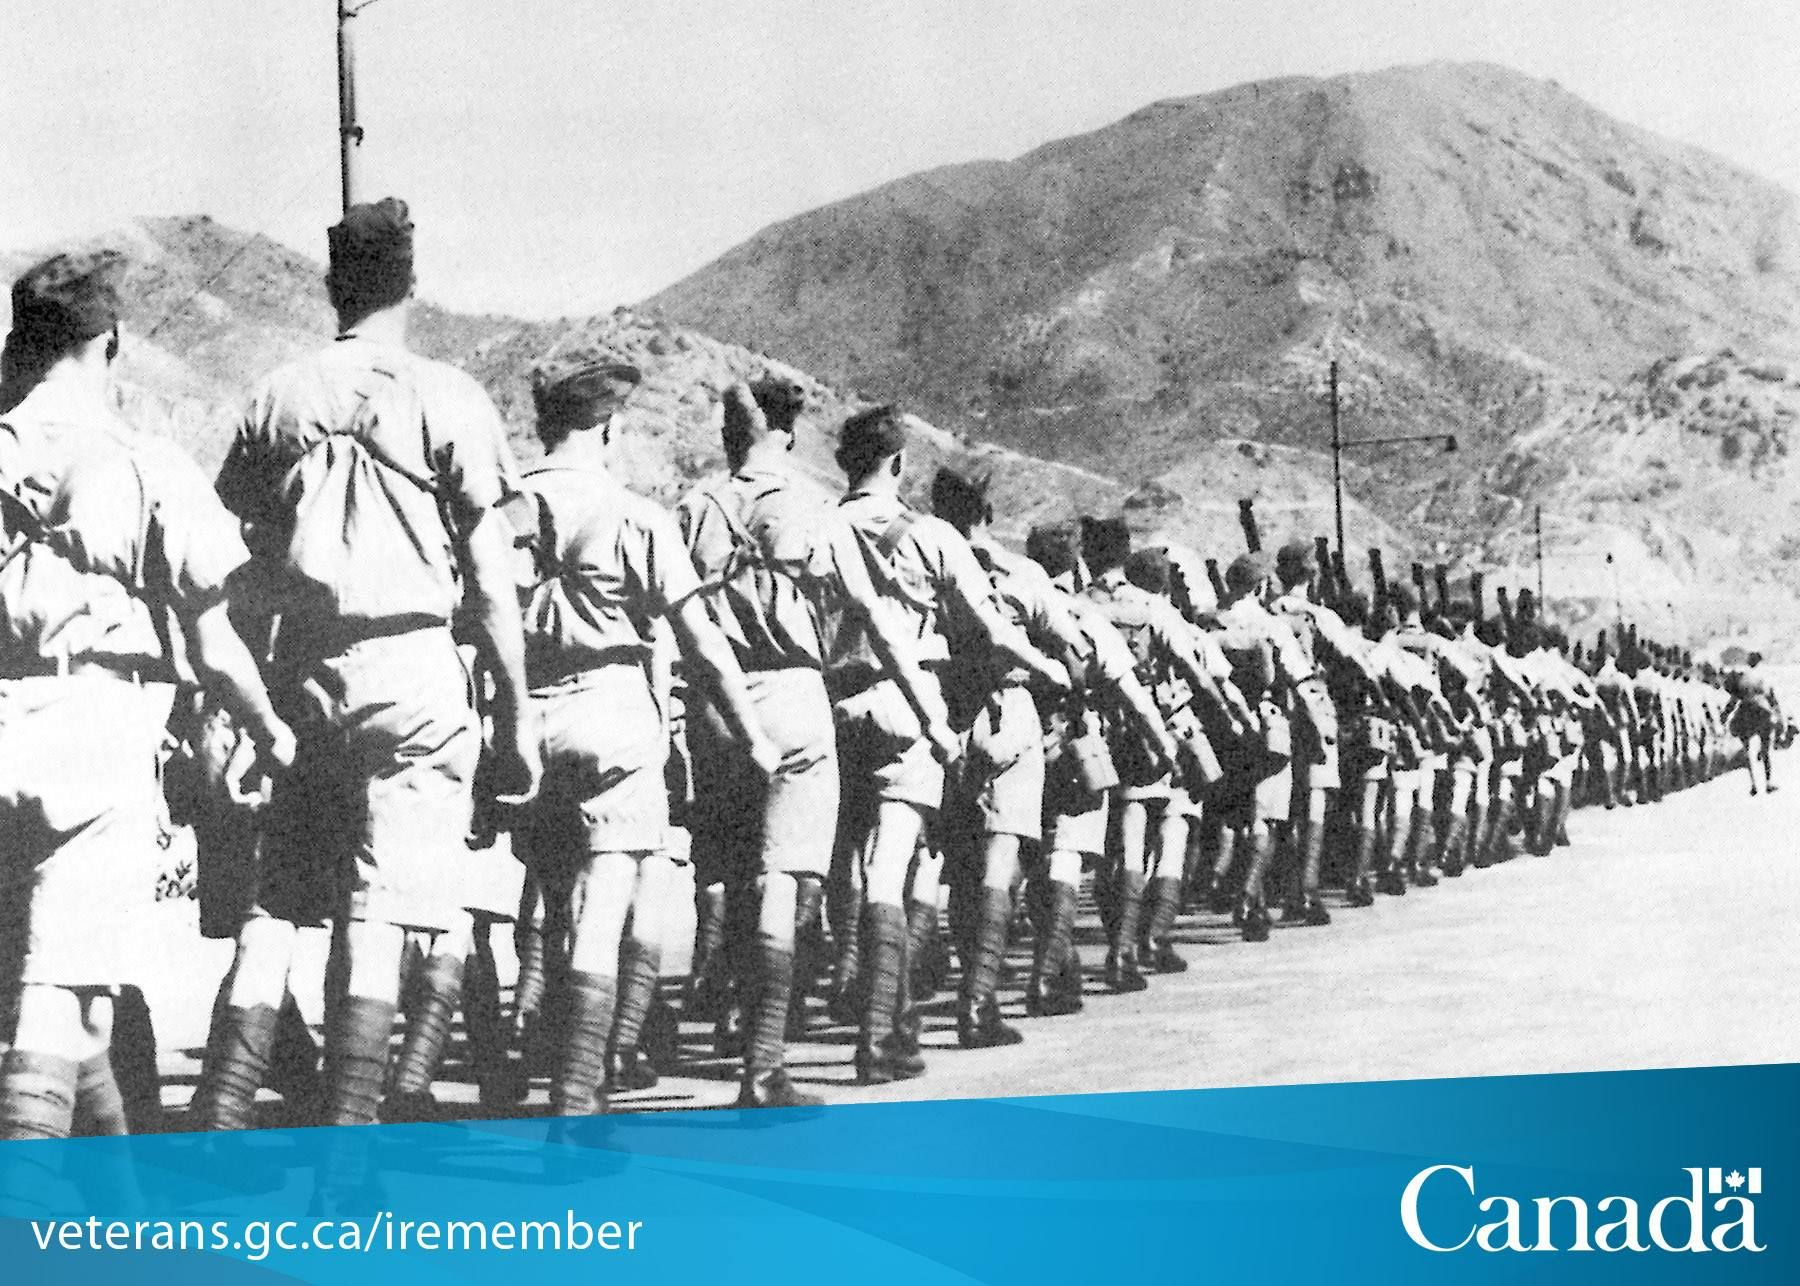 This Year Marks The 72nd Anniversary Of The Battle Of Hong Kong World War Ii 1975 Canadians From Units That Included The Winnipeg Grena Rs And The